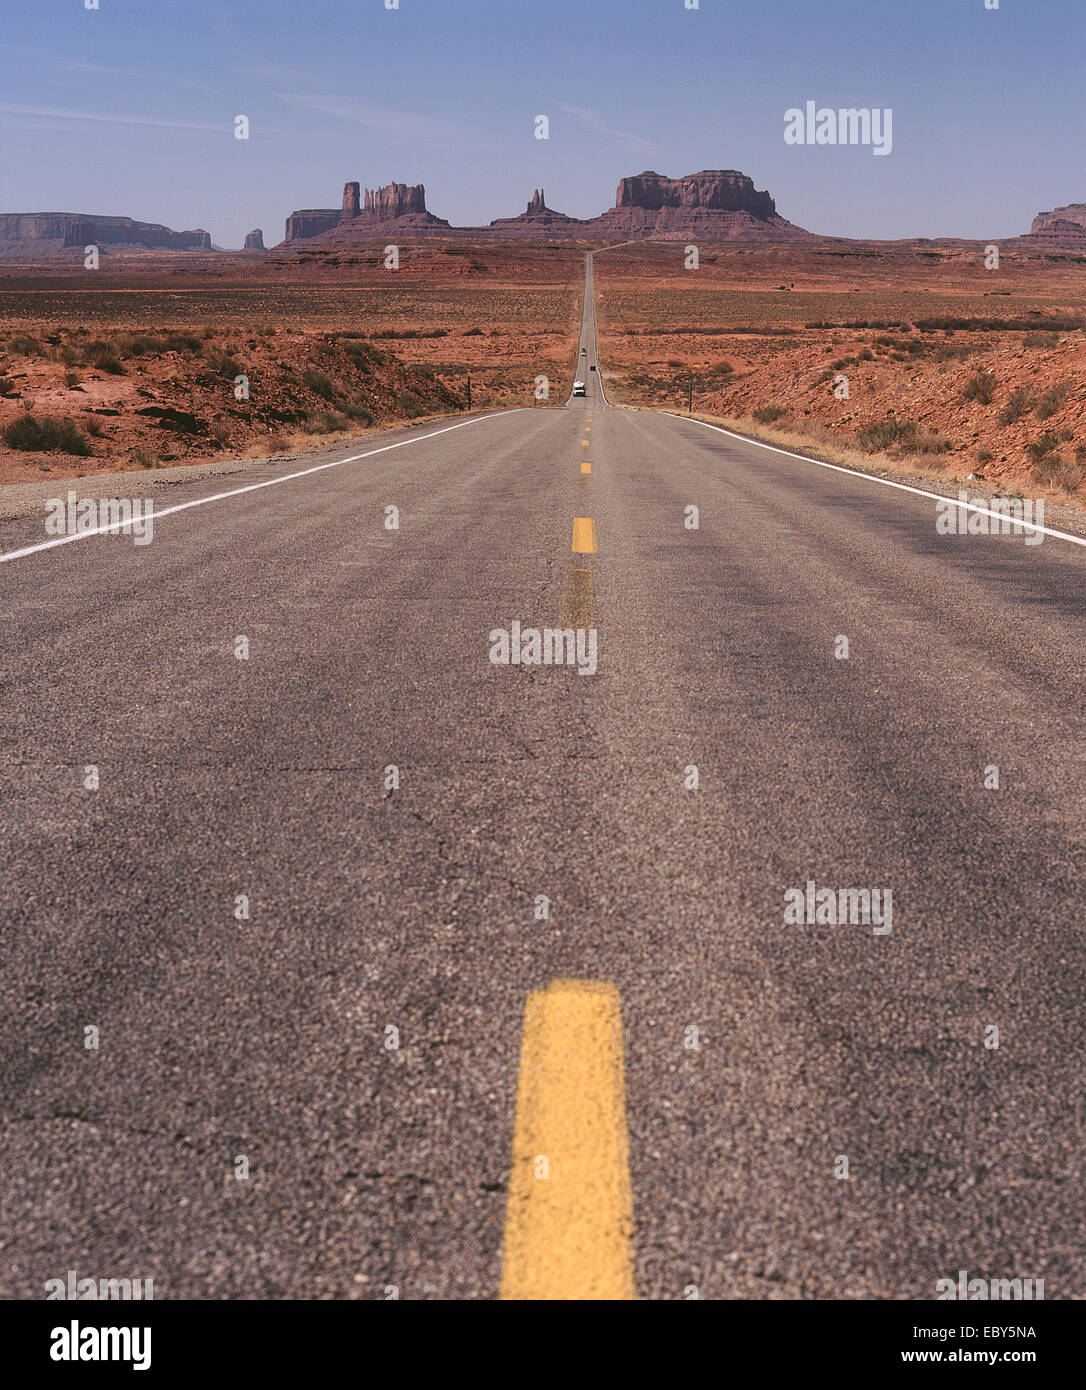 Road leading to Monument Valley Utah USA Stock Photo